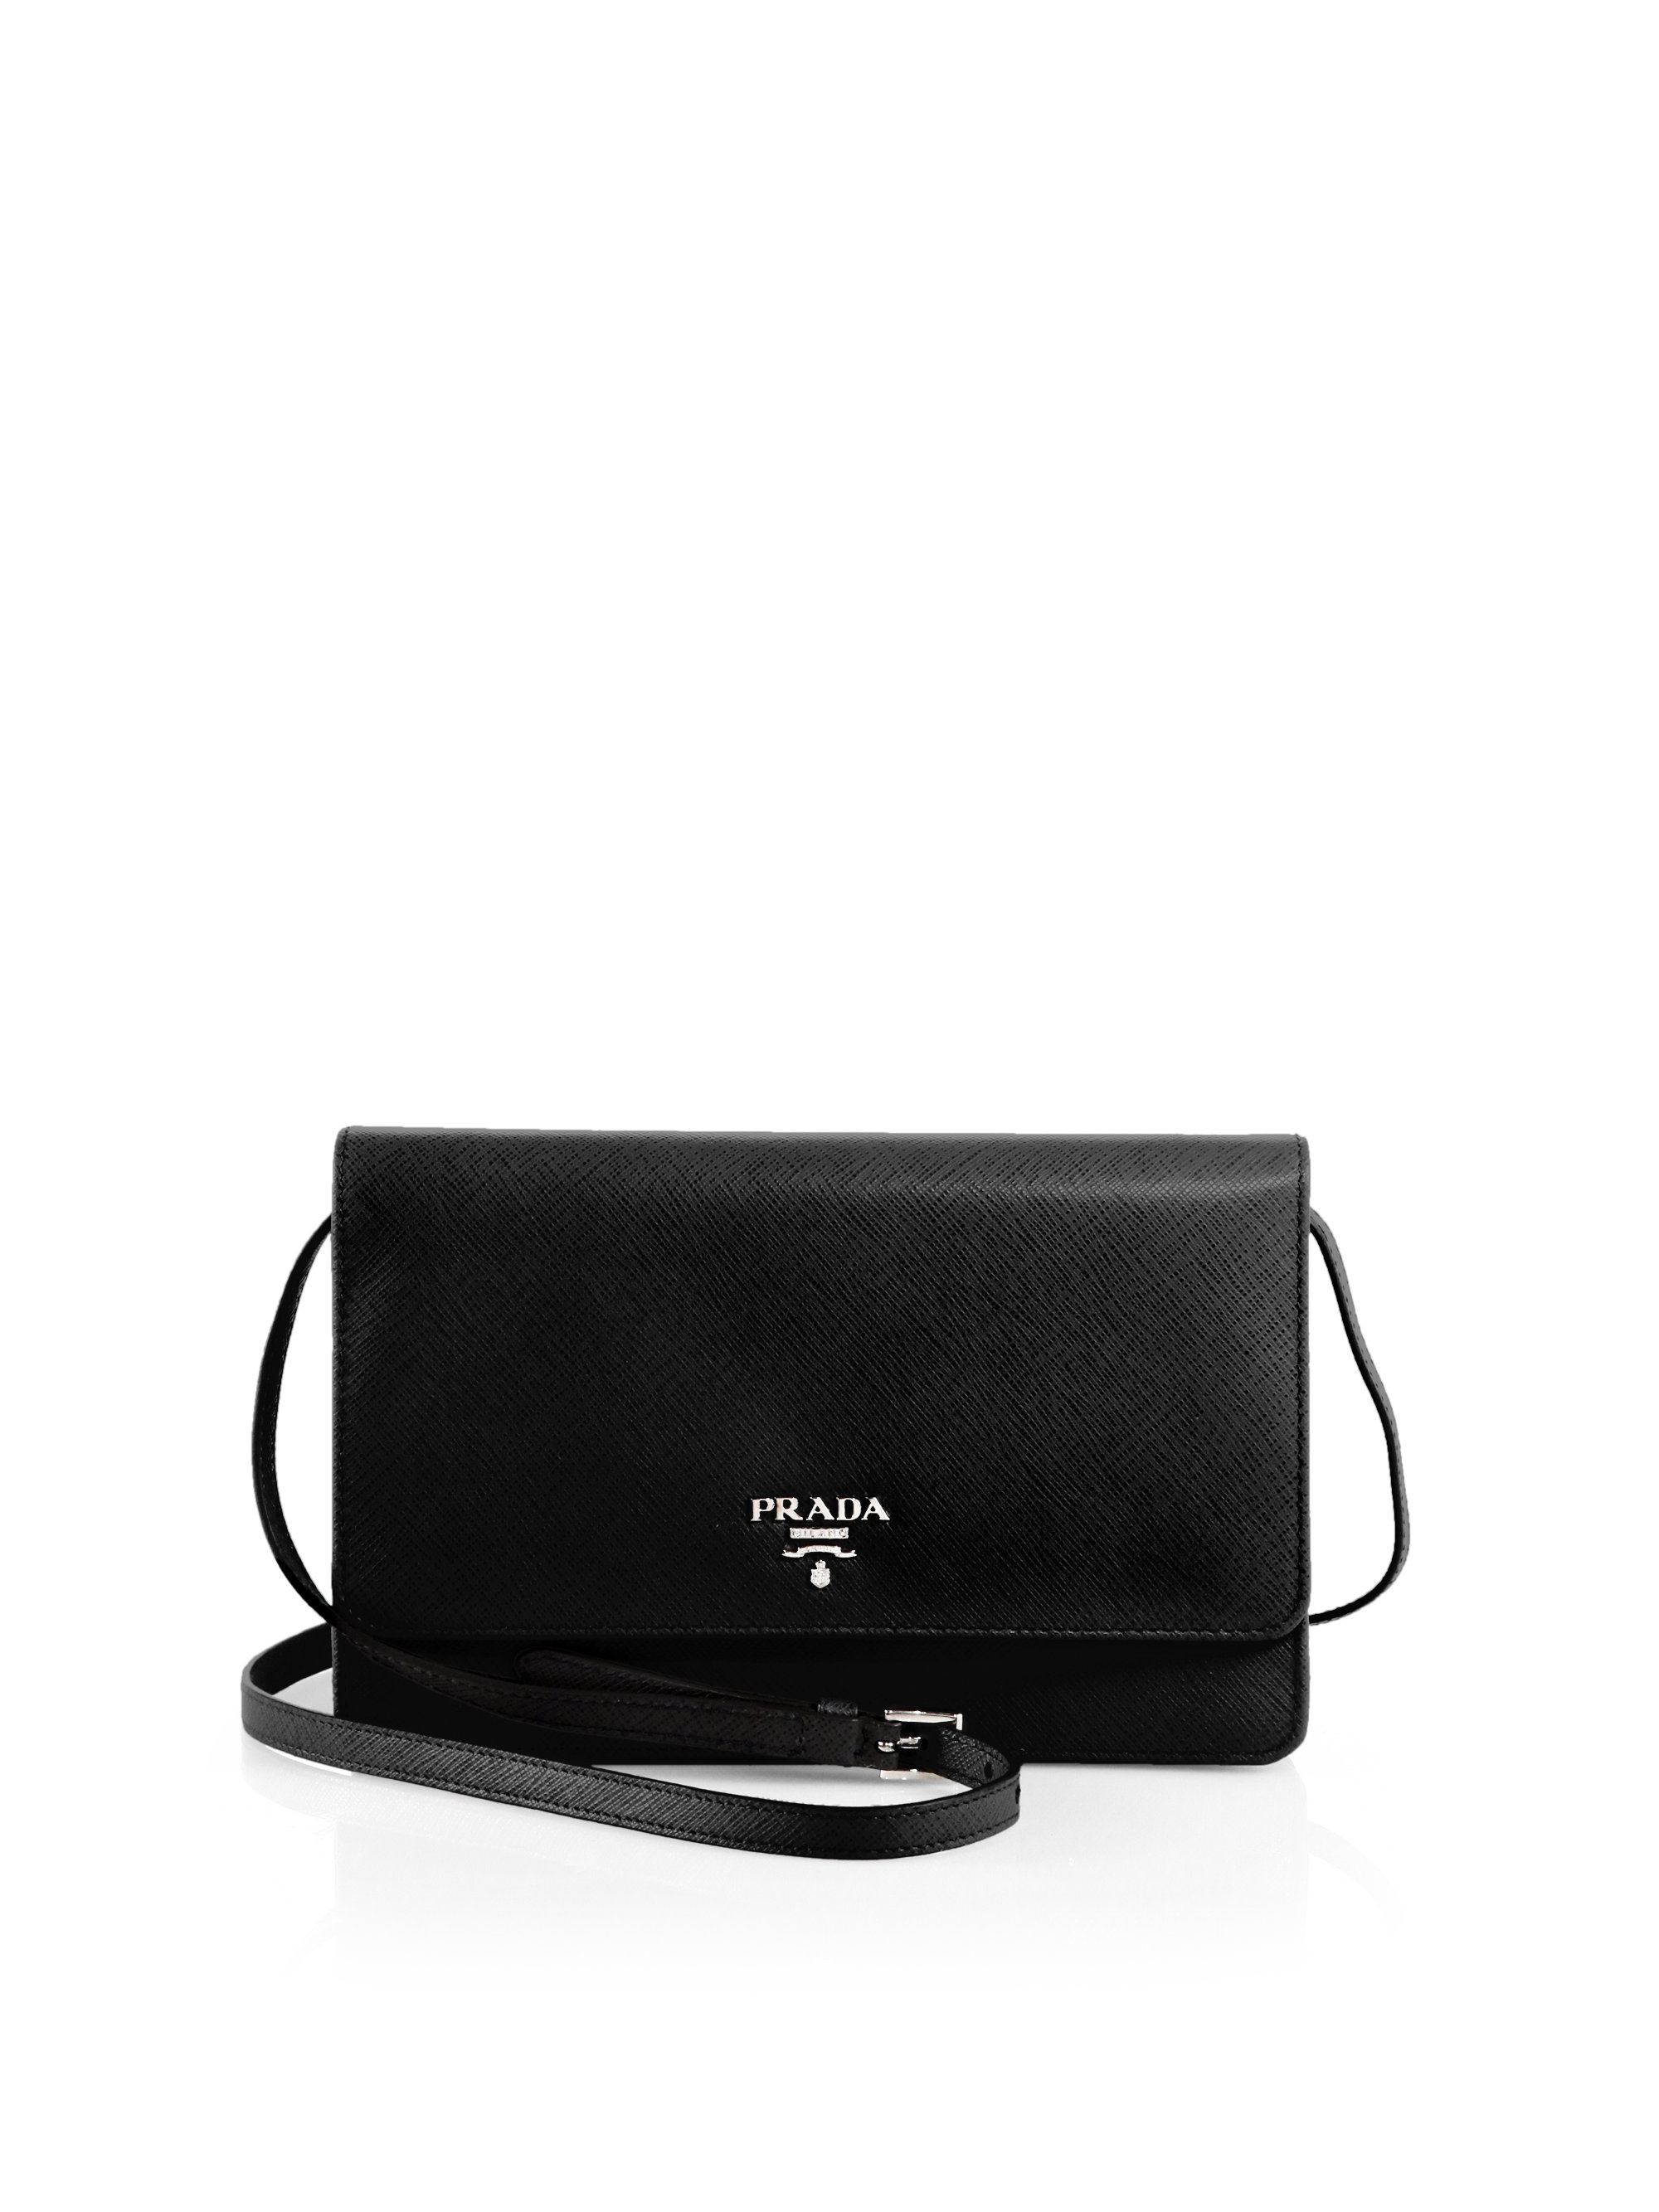 Prada Saffiano Crossbody Clutch in Black (NERO-BLACK) | Lyst